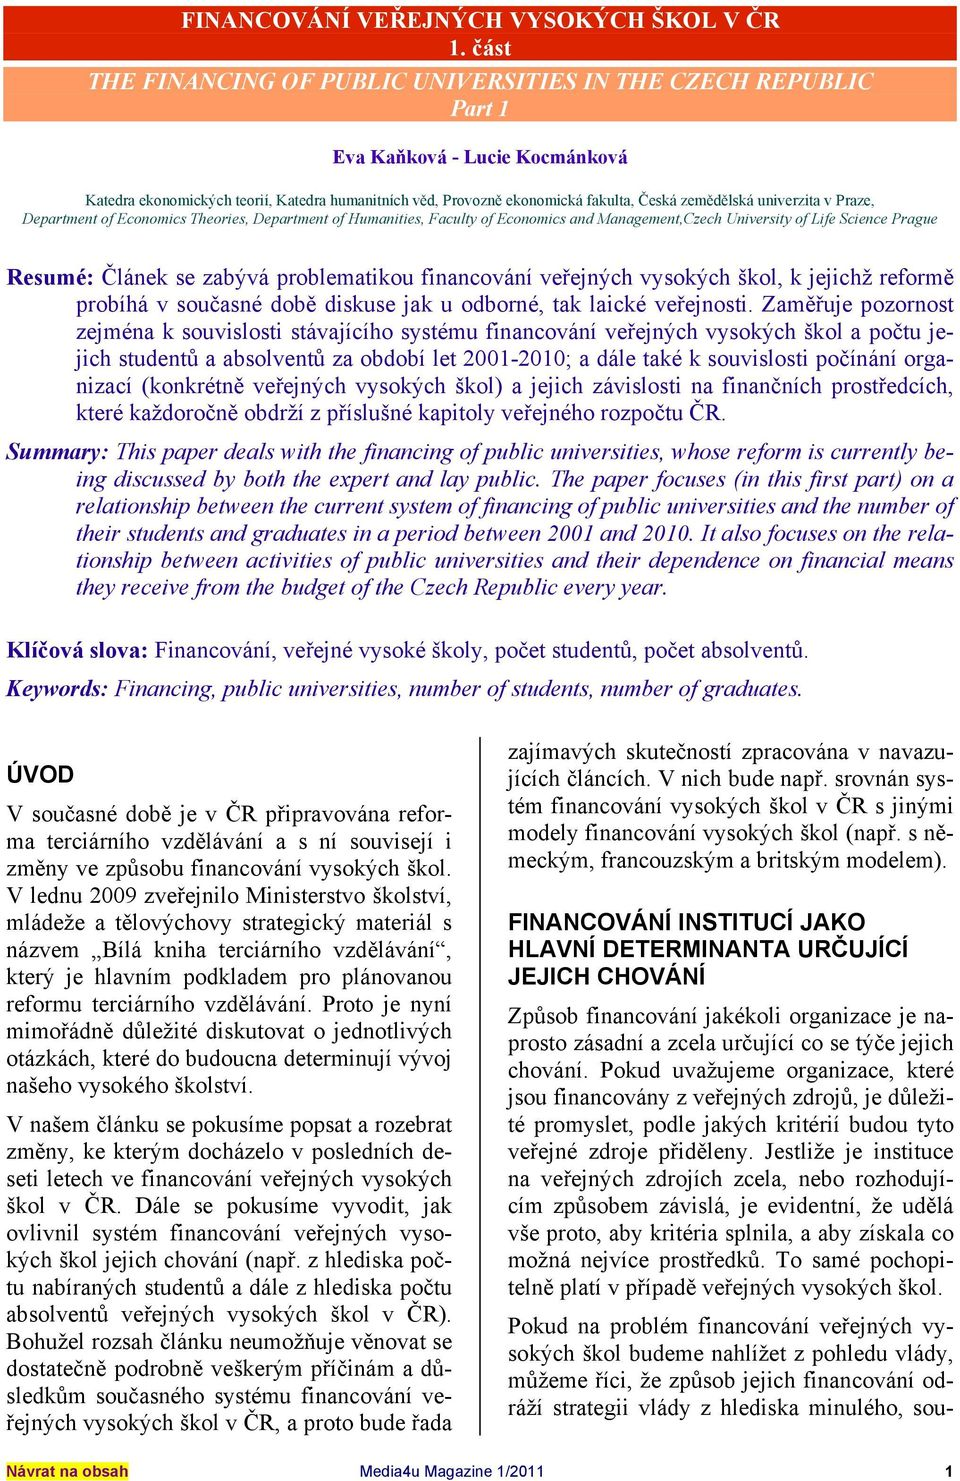 zemědělská univerzita v Praze, Department of Economics Theories, Department of Humanities, Faculty of Economics and Management,Czech University of Life Science Prague Resumé: Článek se zabývá